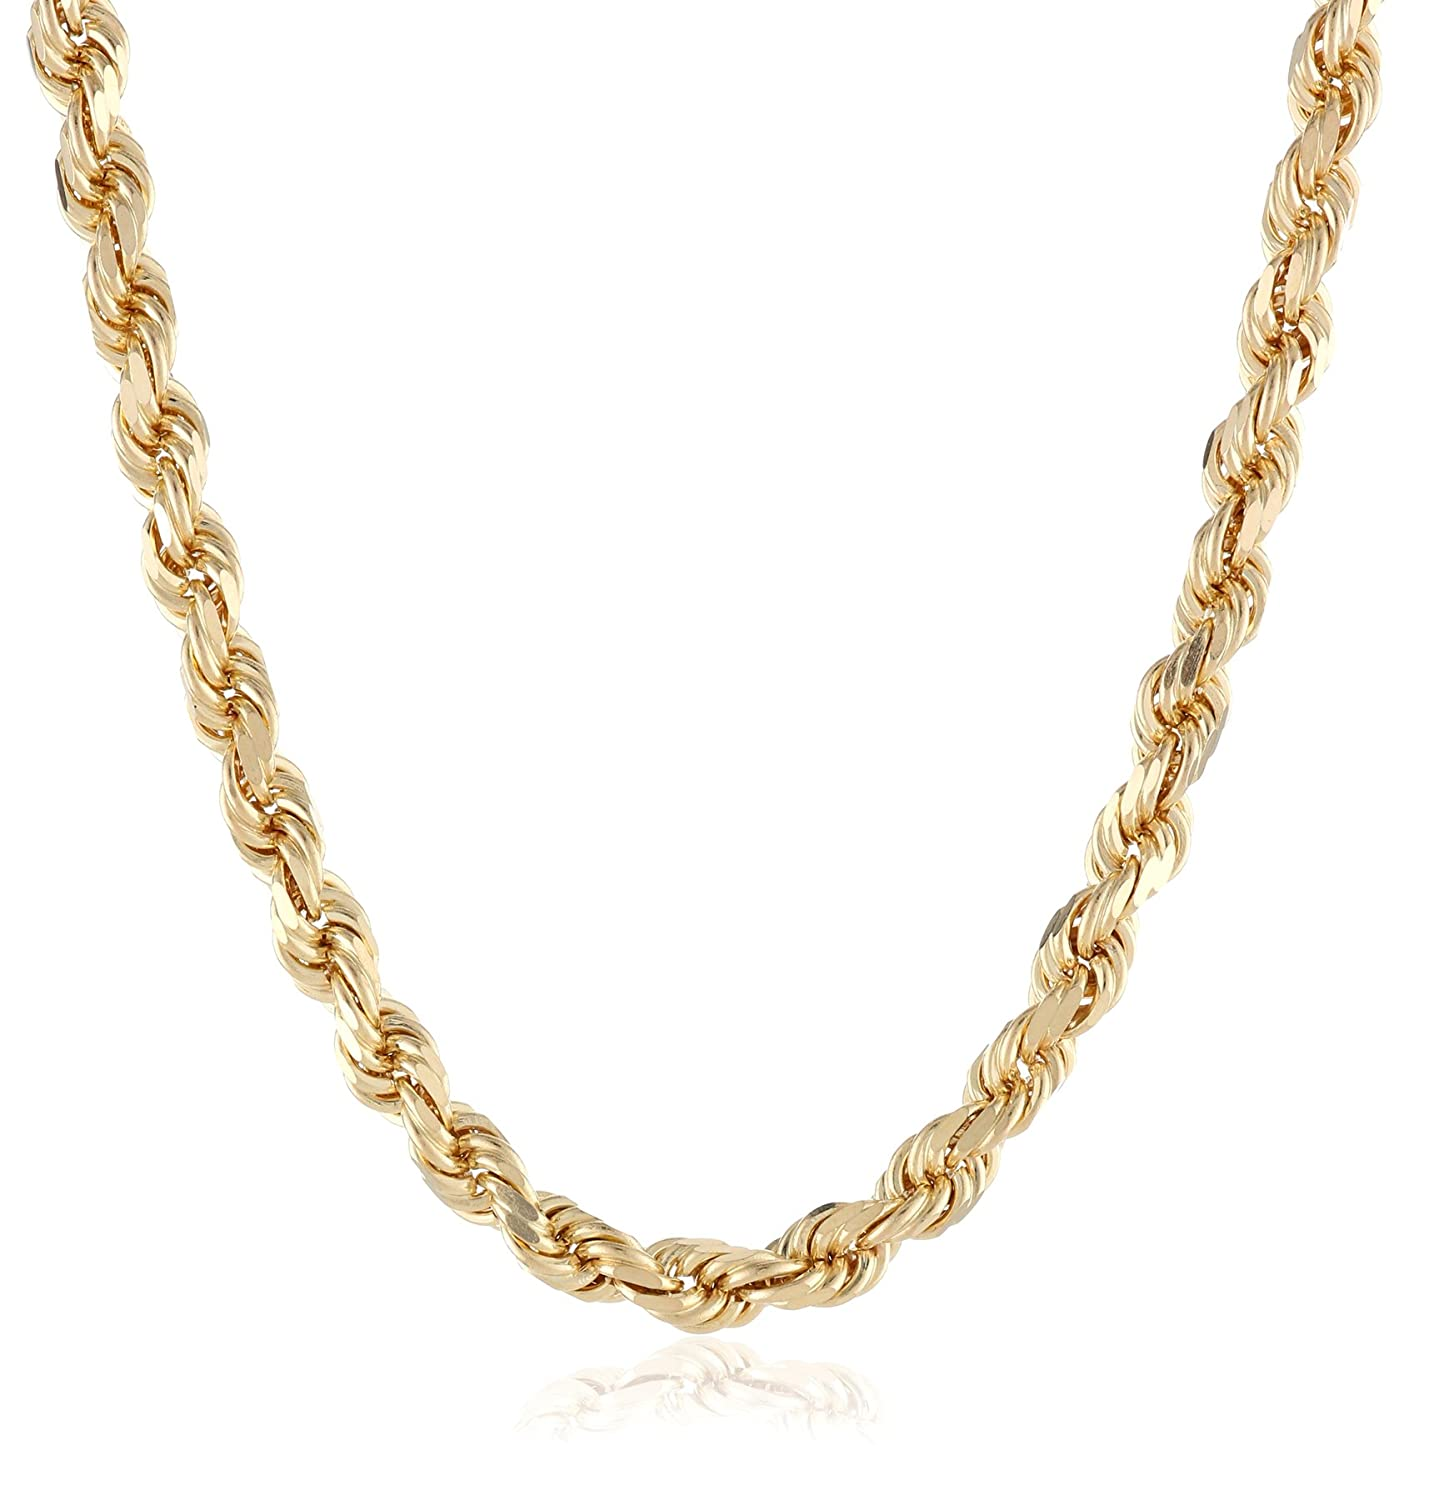 chain classic golden chains product gold jewellery online